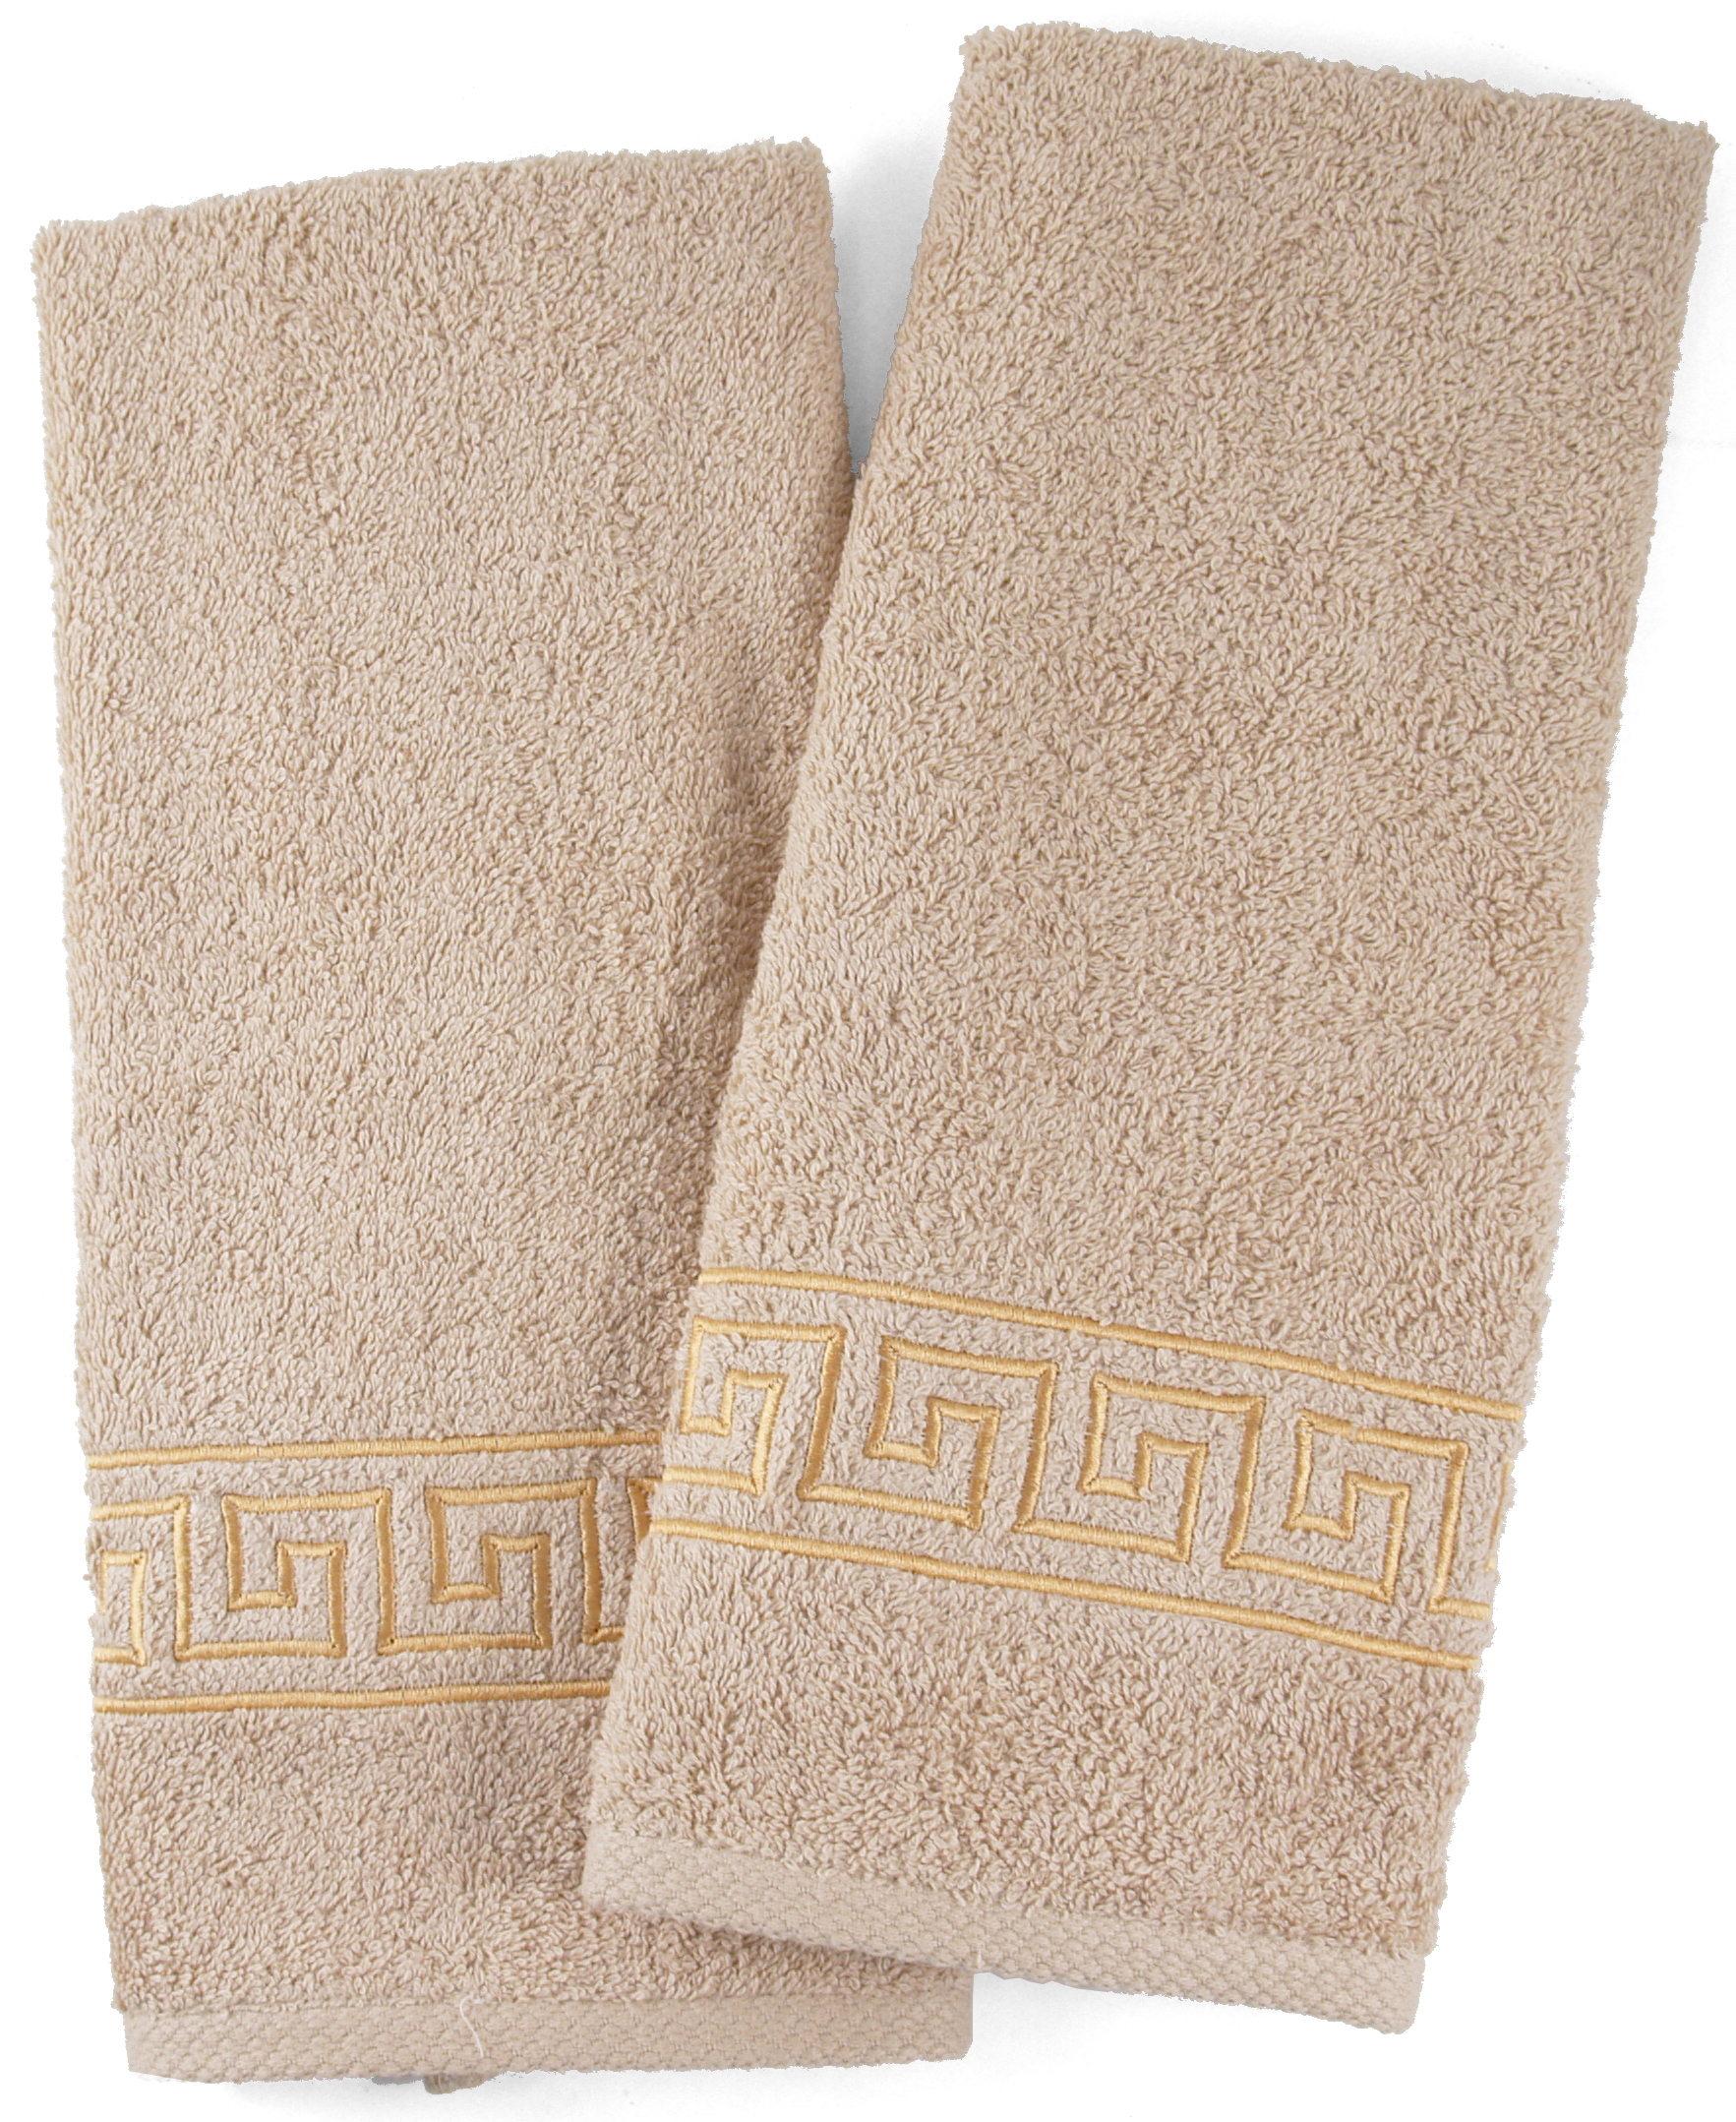 Beige Cotton Hand Towel With Embroidered Greek Key, Set Of 2